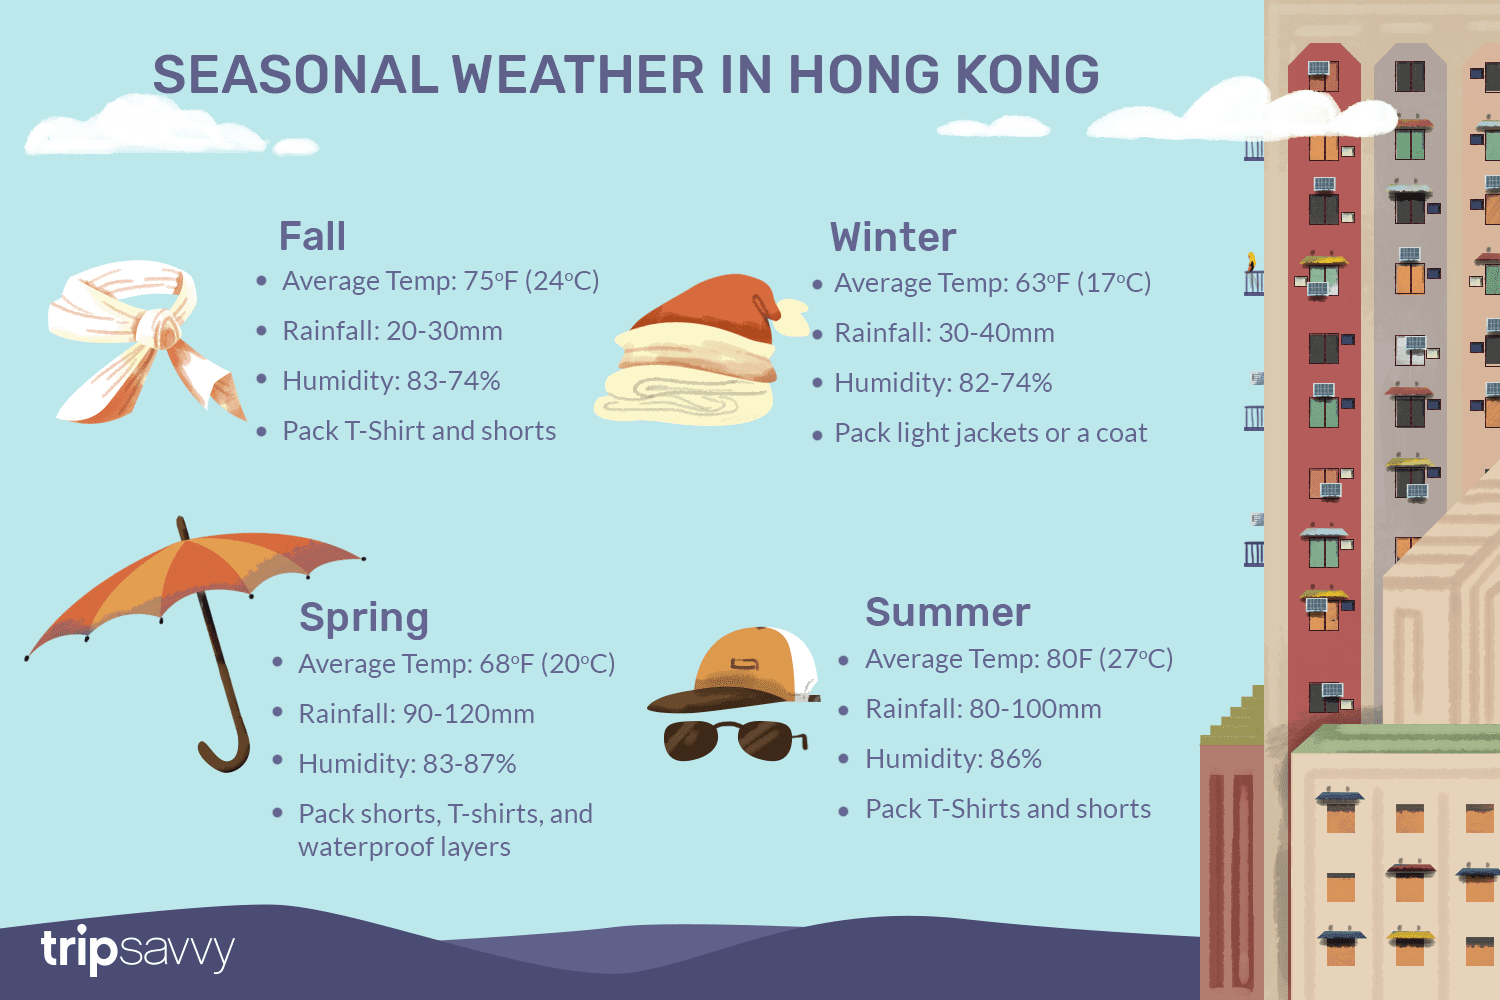 cd034c7b35 The Weather and Climate in Hong Kong